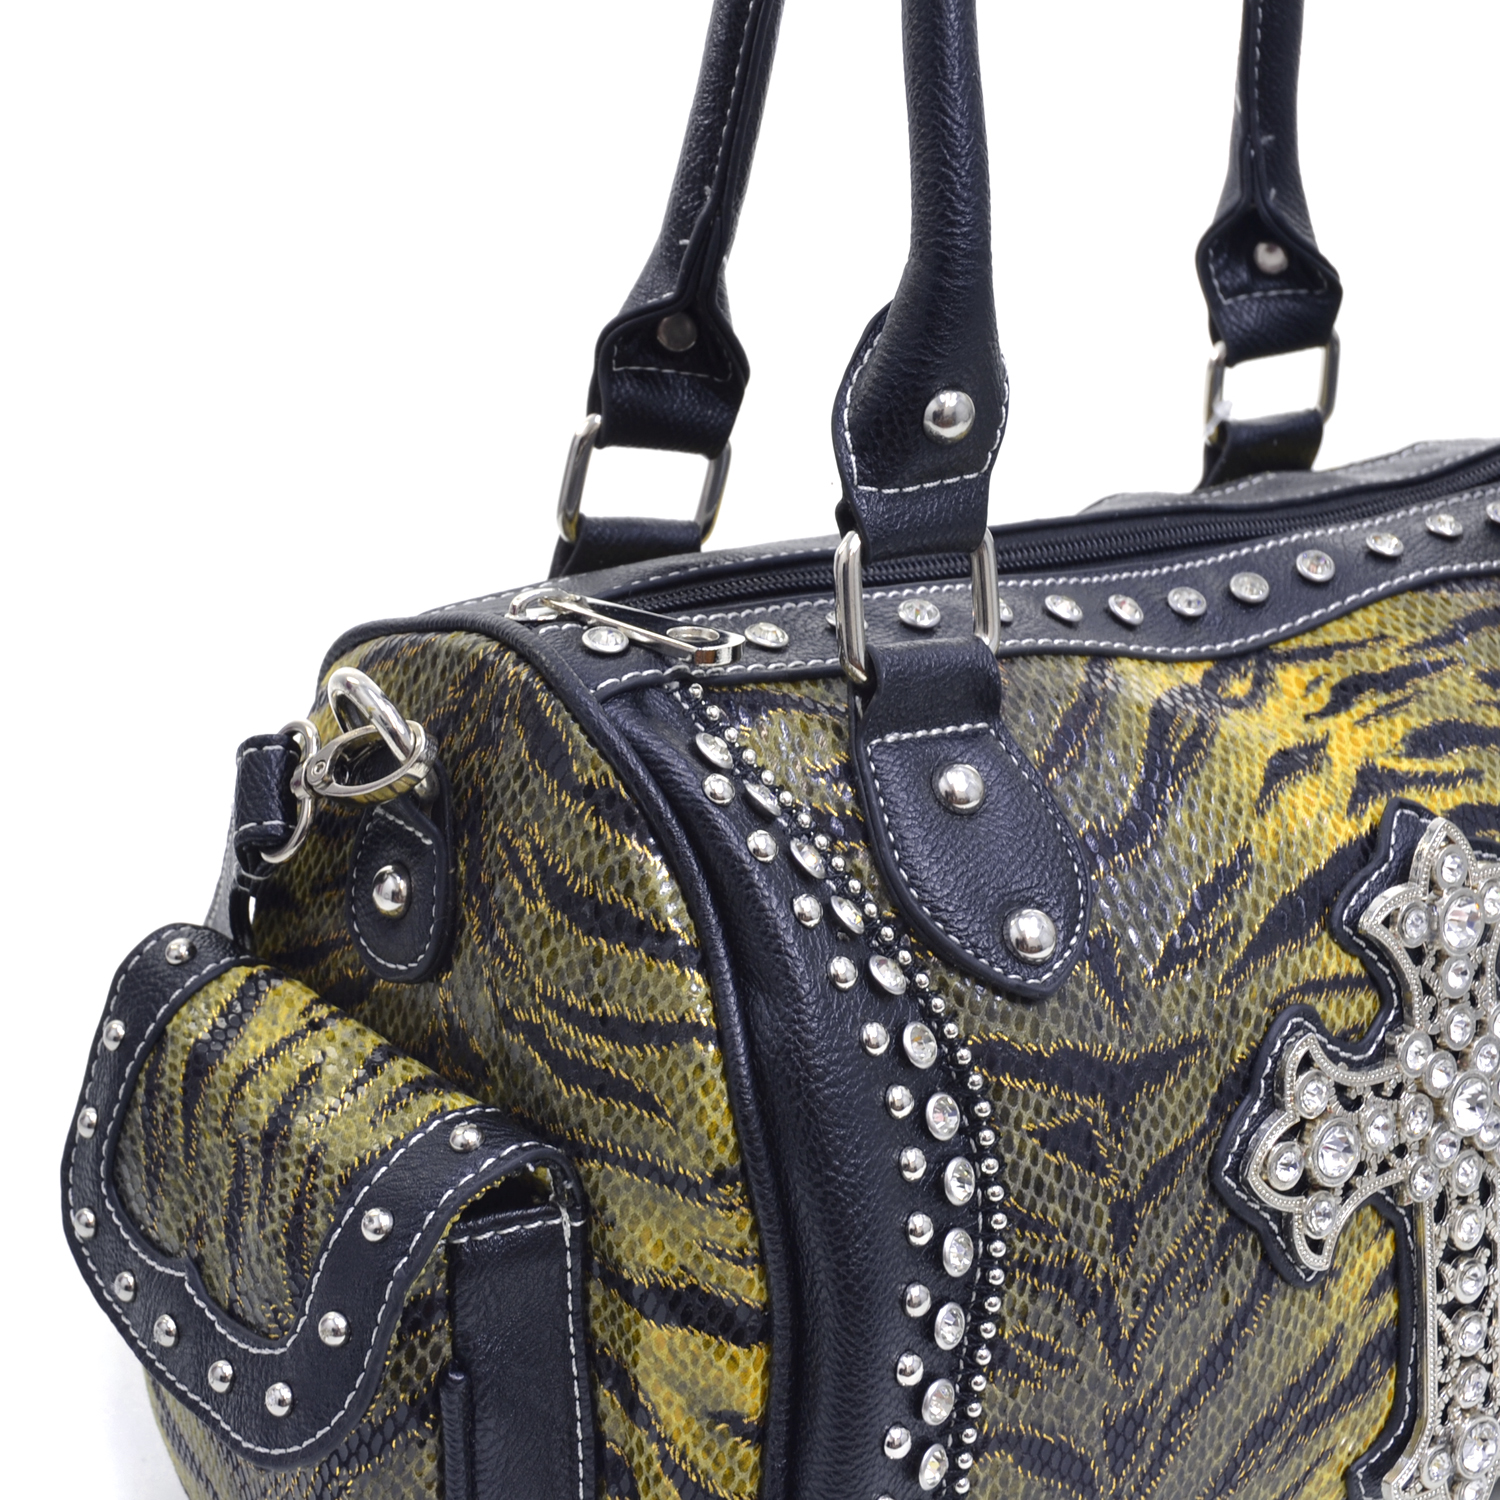 Women's Rhinestone Cross Adorned Shoulder Bag with Animal Print and Side Exterior Pockets